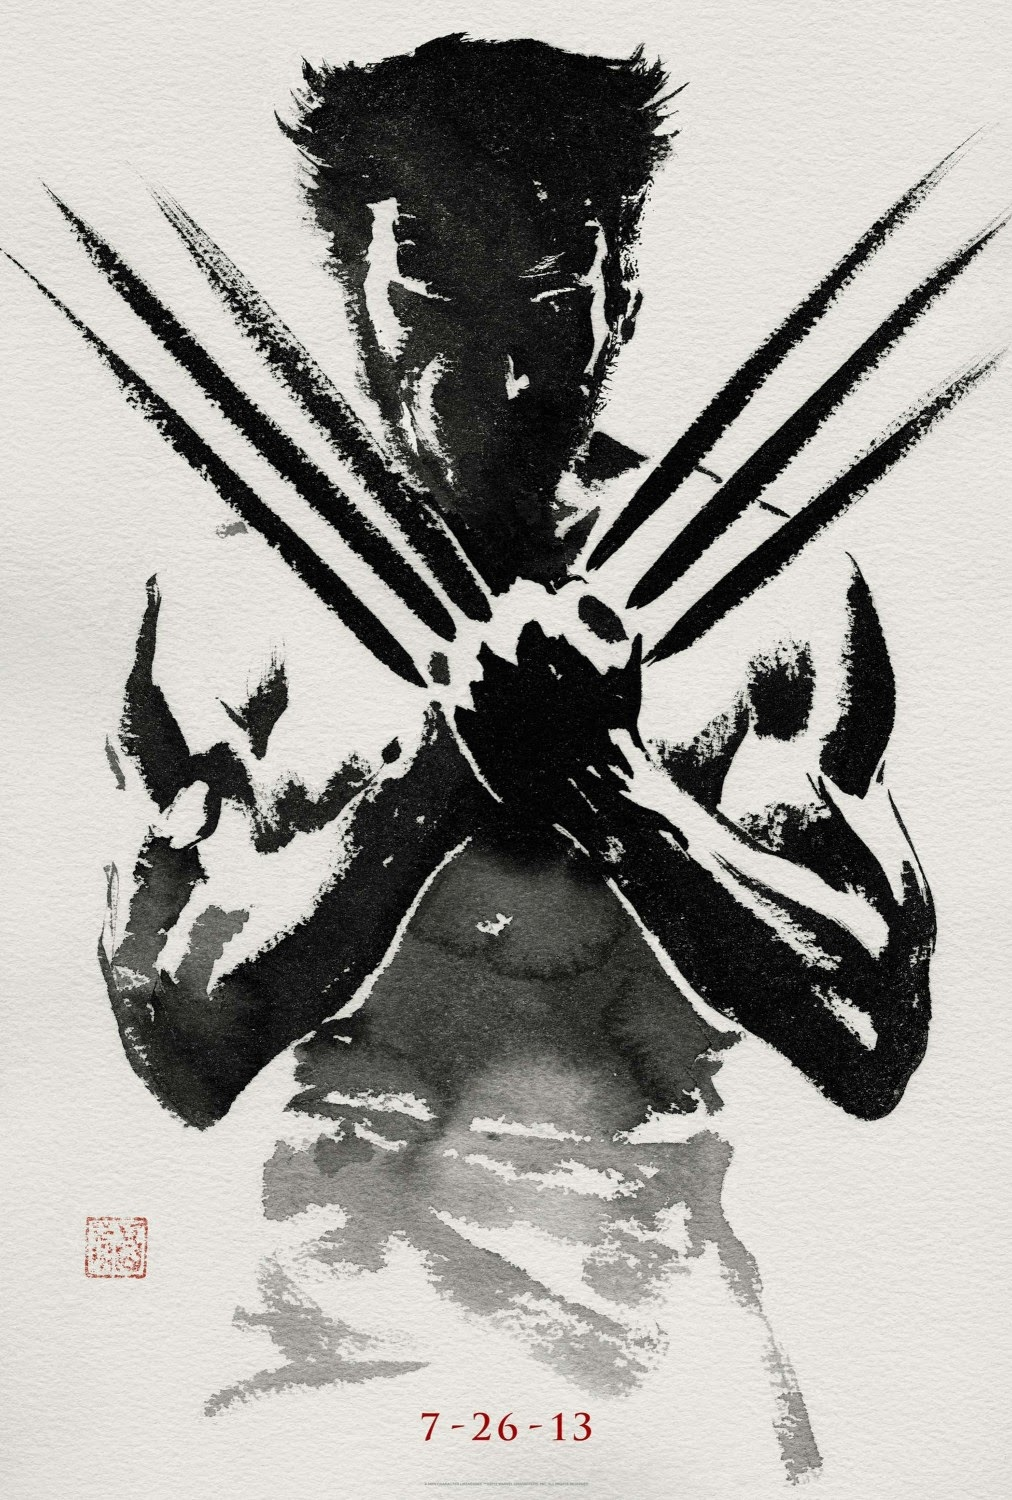 The Wolverine Movie poster...the awesome one that looks like a Japanese print